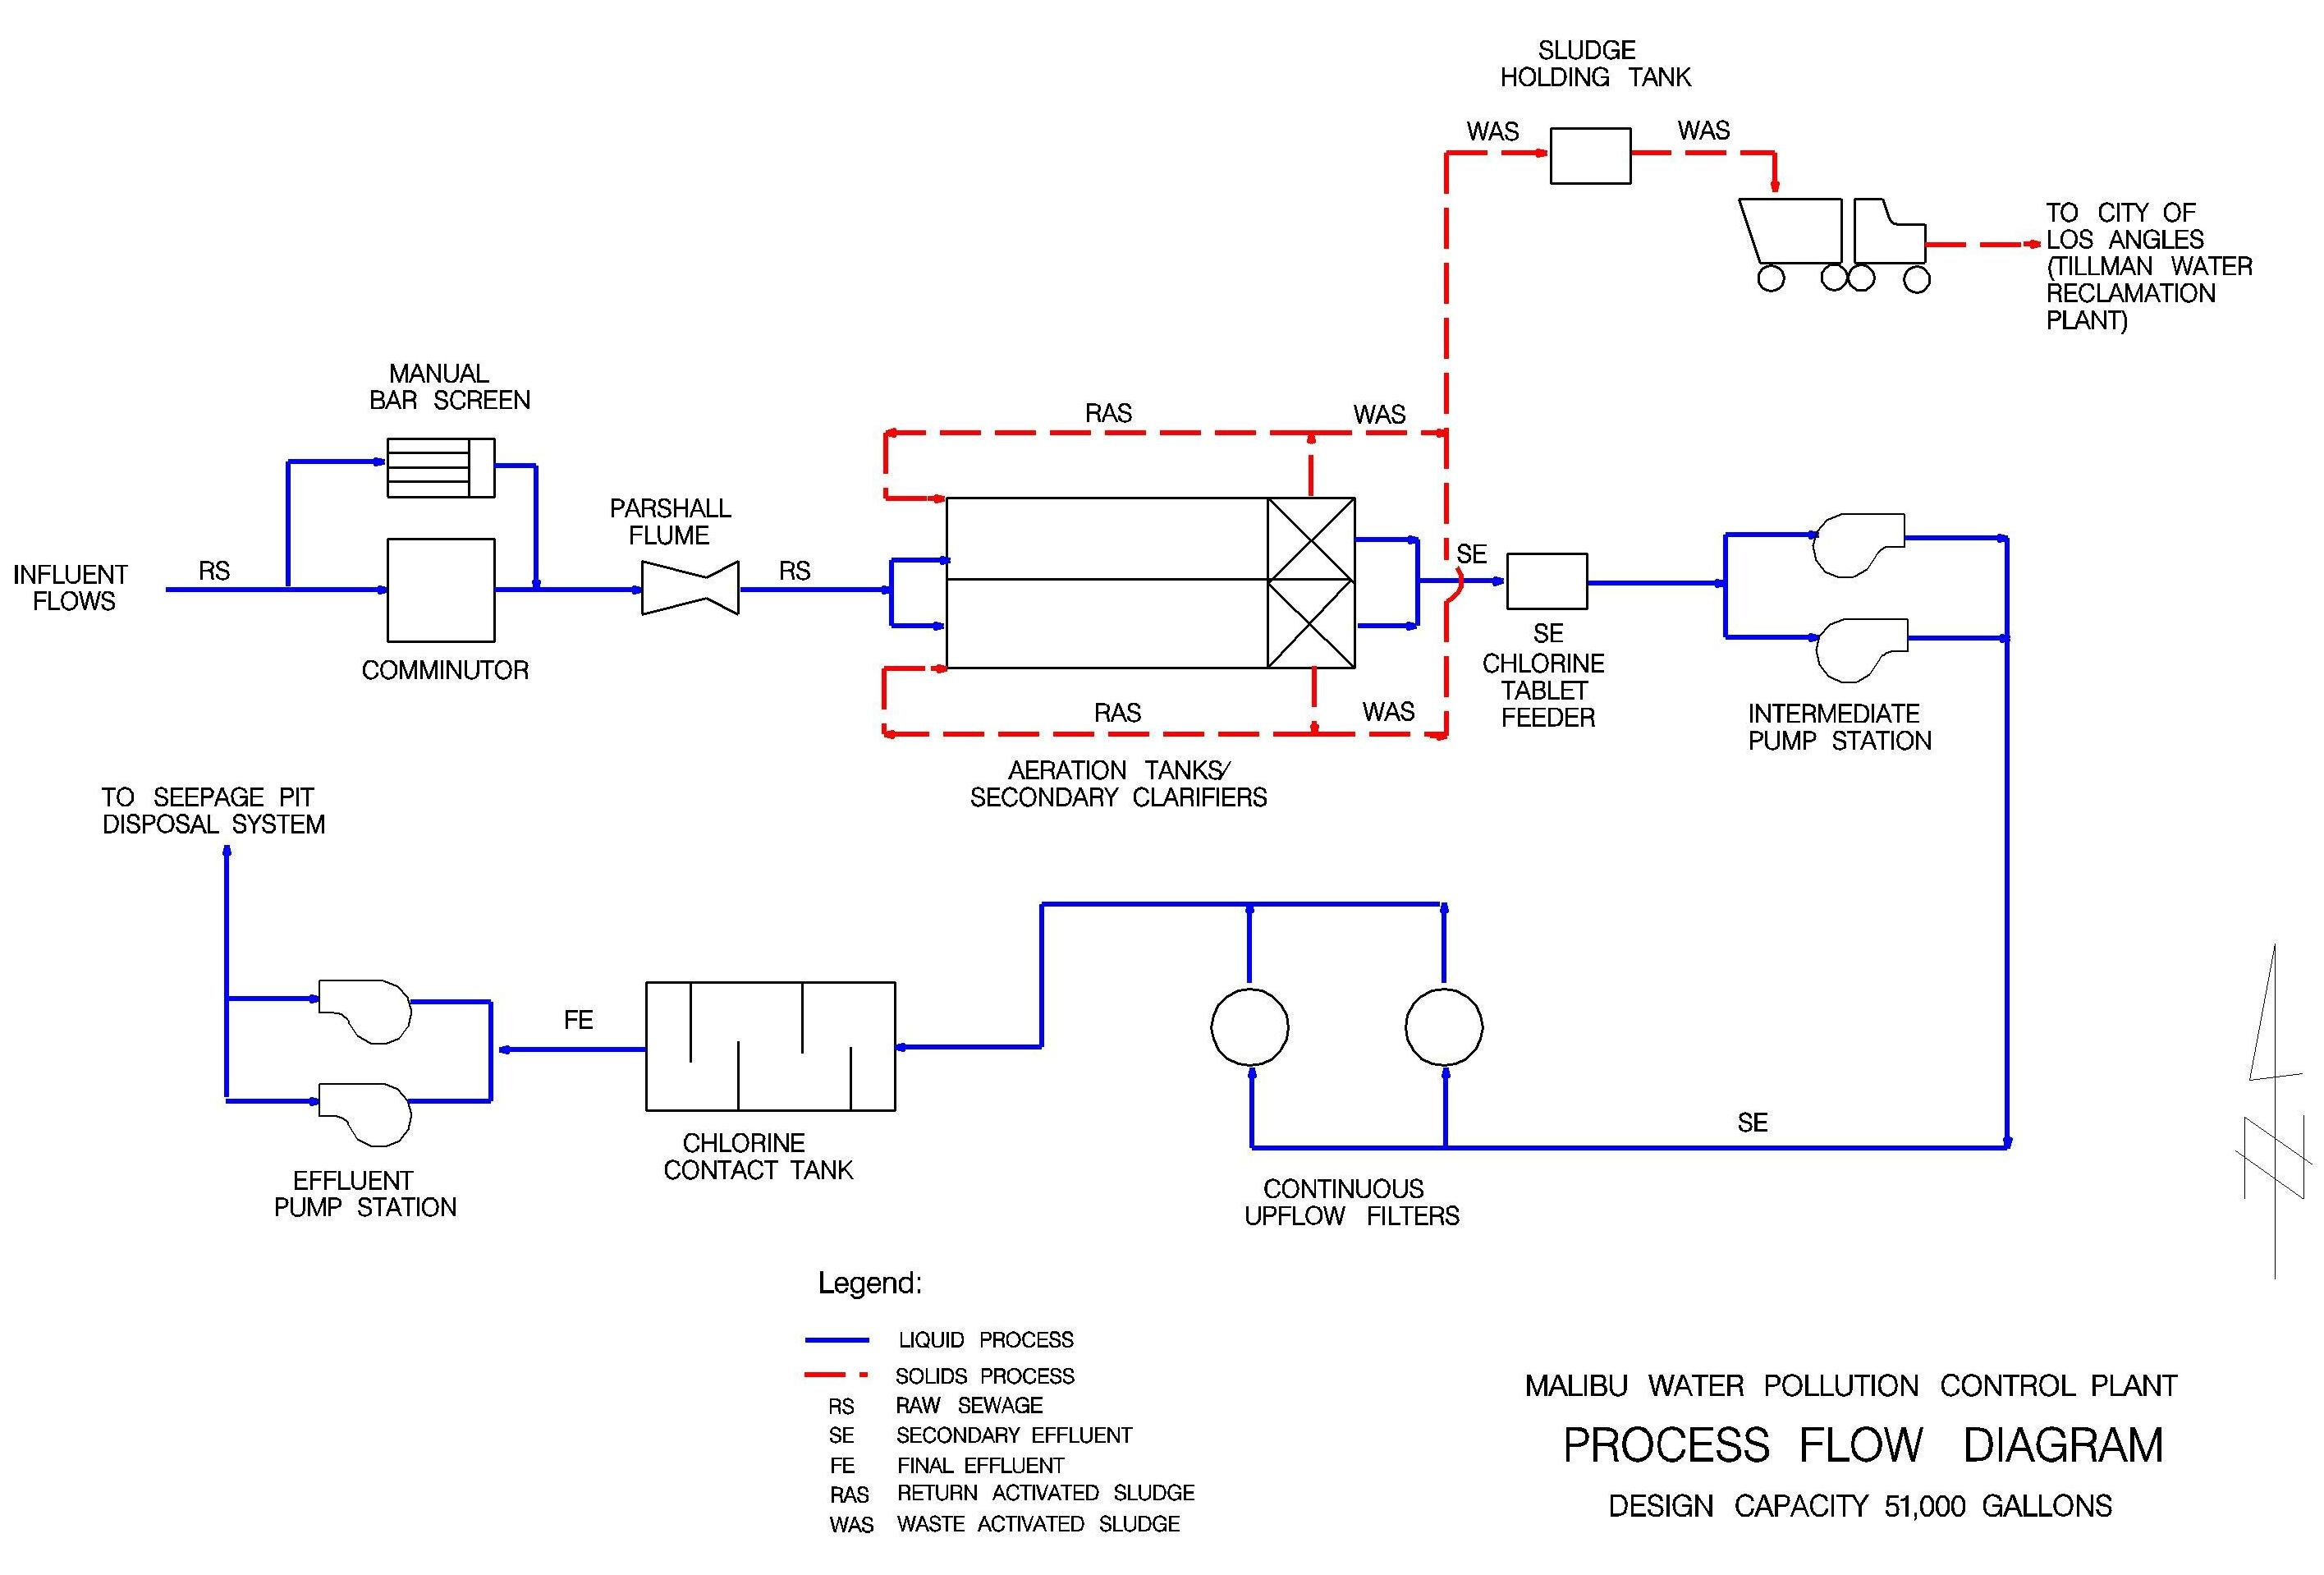 Figure 3-1 is a Flow Diagram of the treatment process. Following is a brief  discussion and description of the treatment plant processes.